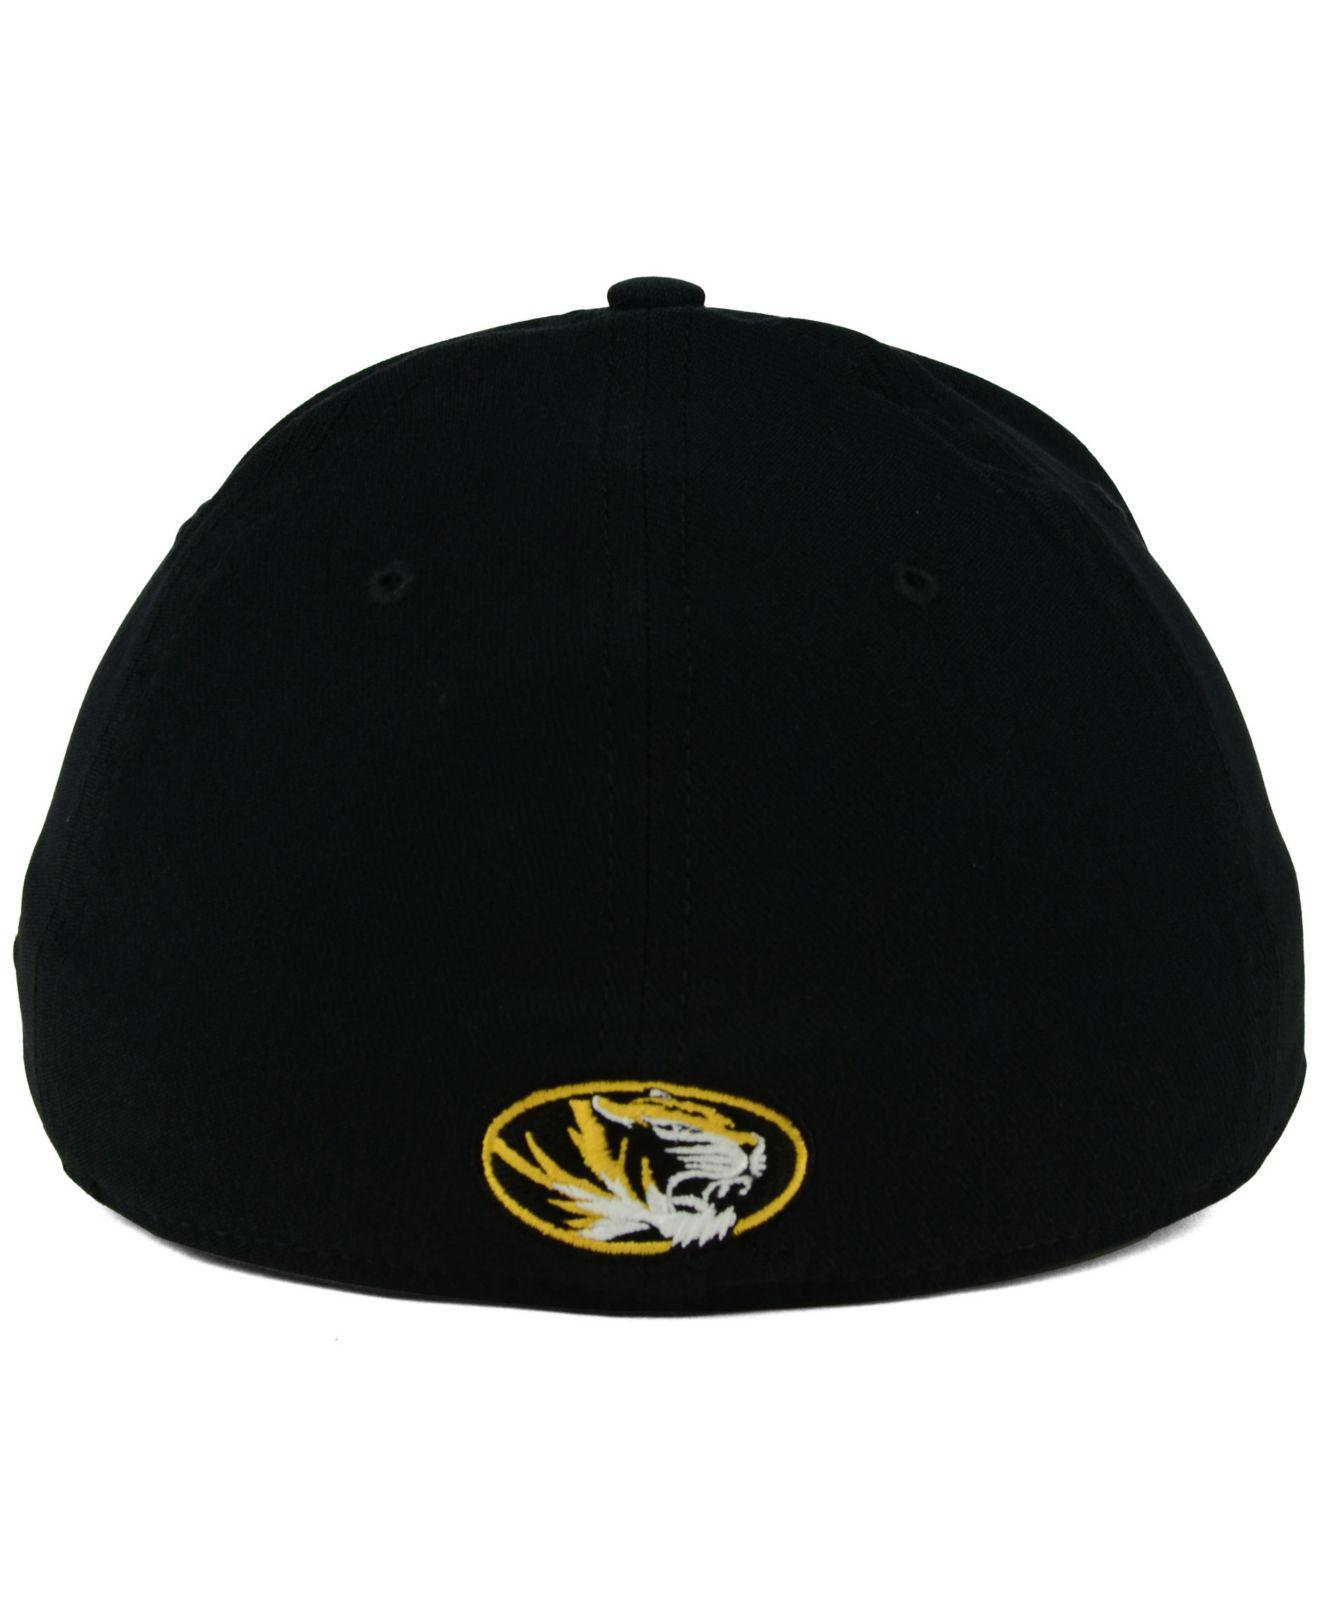 1672d645d1180c ... germany nike black missouri tigers classic swoosh cap for men lyst.  view fullscreen 65a97 5c274